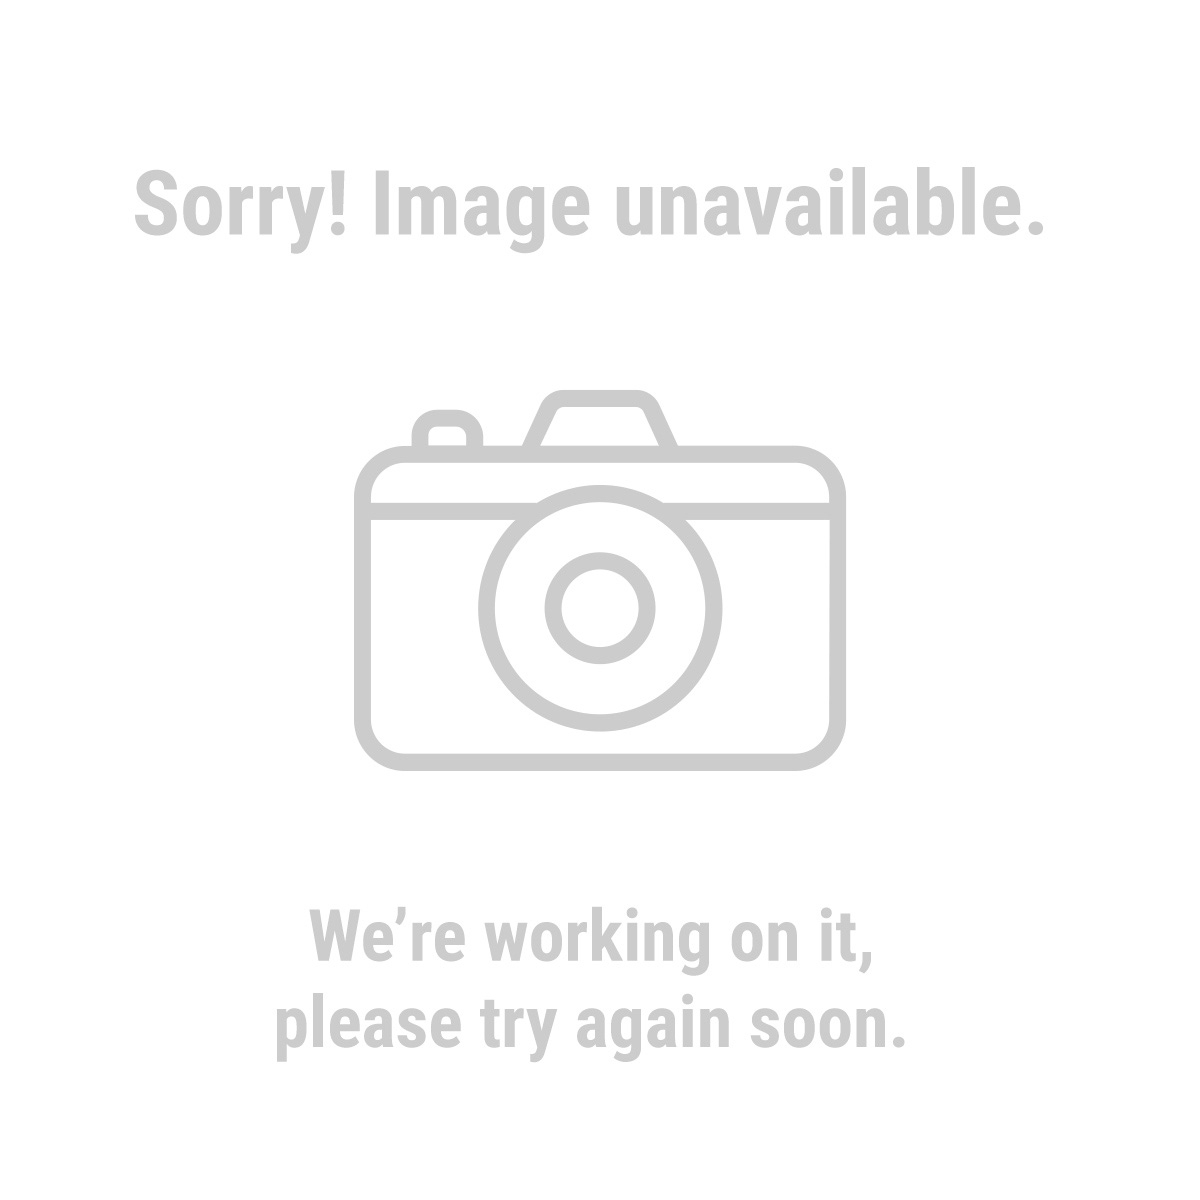 16 in. x 5-1/2 in. x 5-1/2 in.  Small Animal Trap